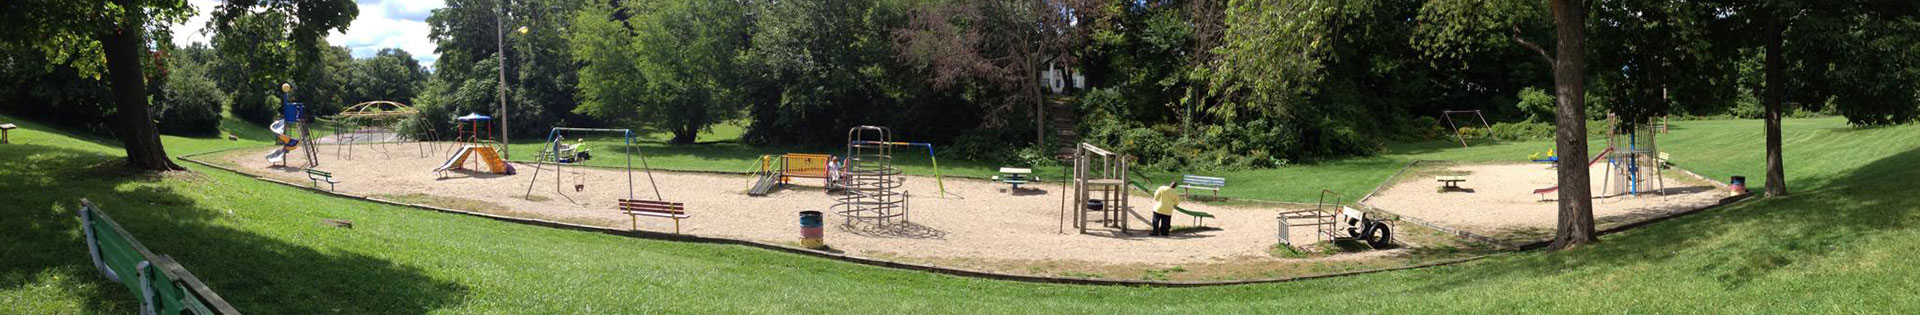 Neighborhood Park and Playground